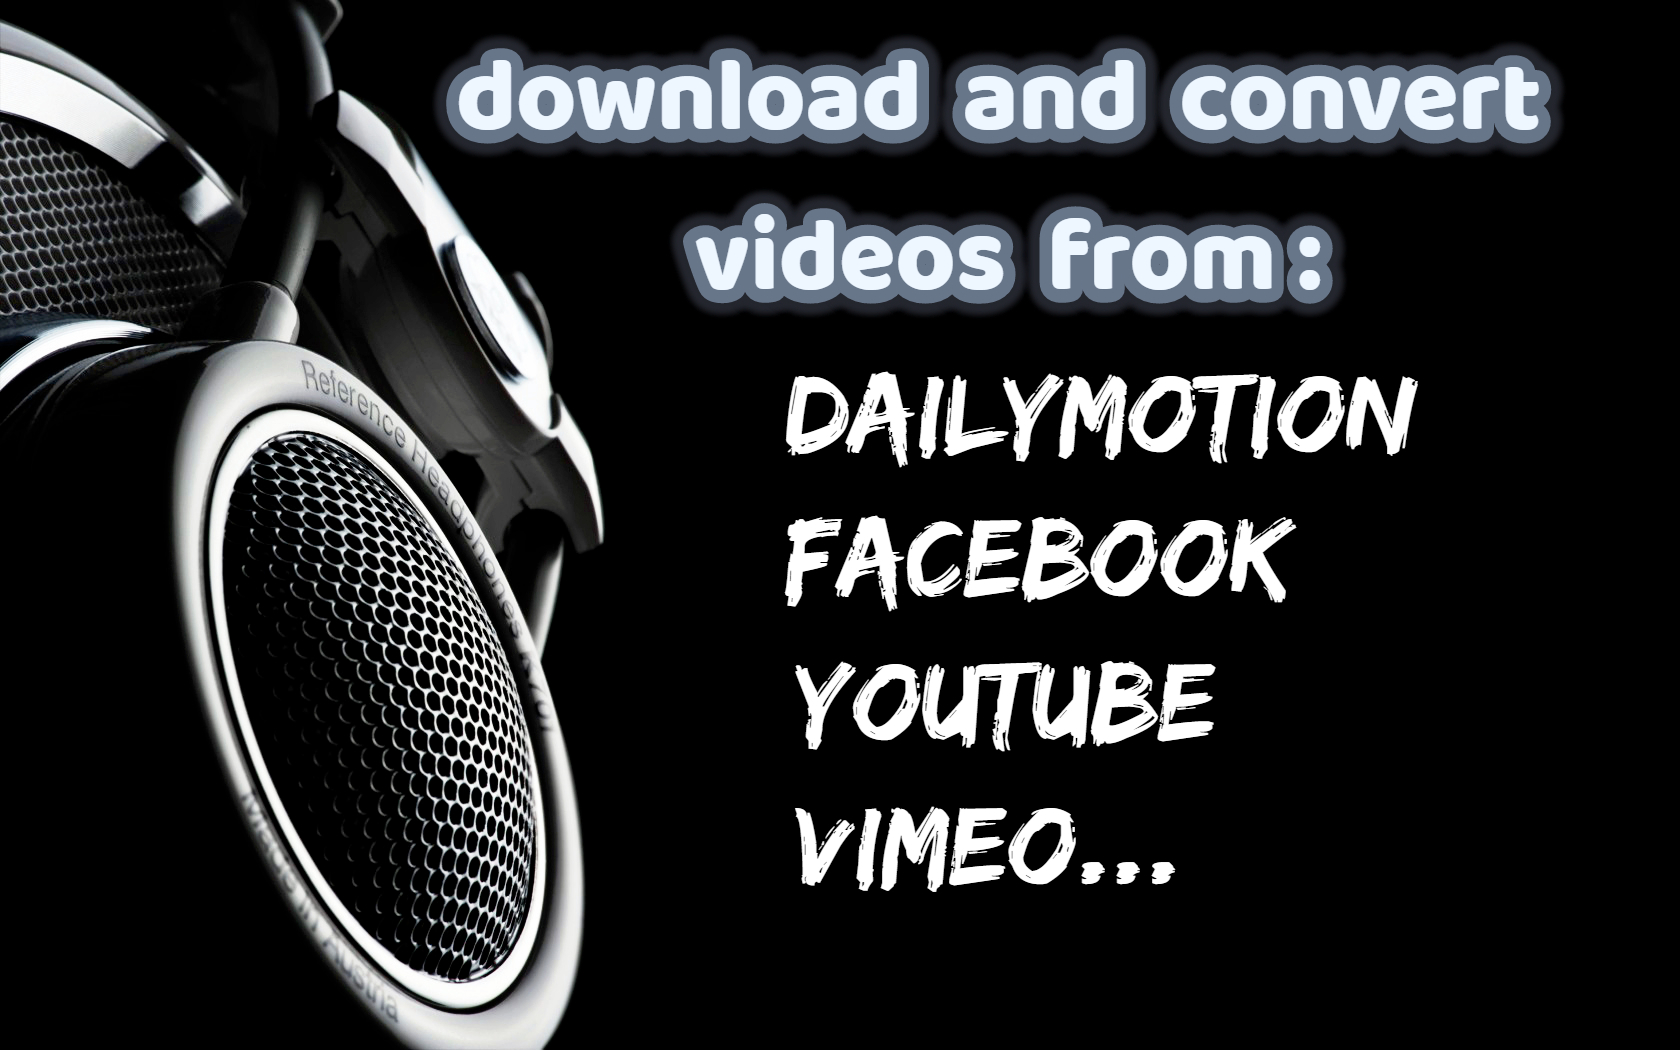 download any video from the net and convert to any format